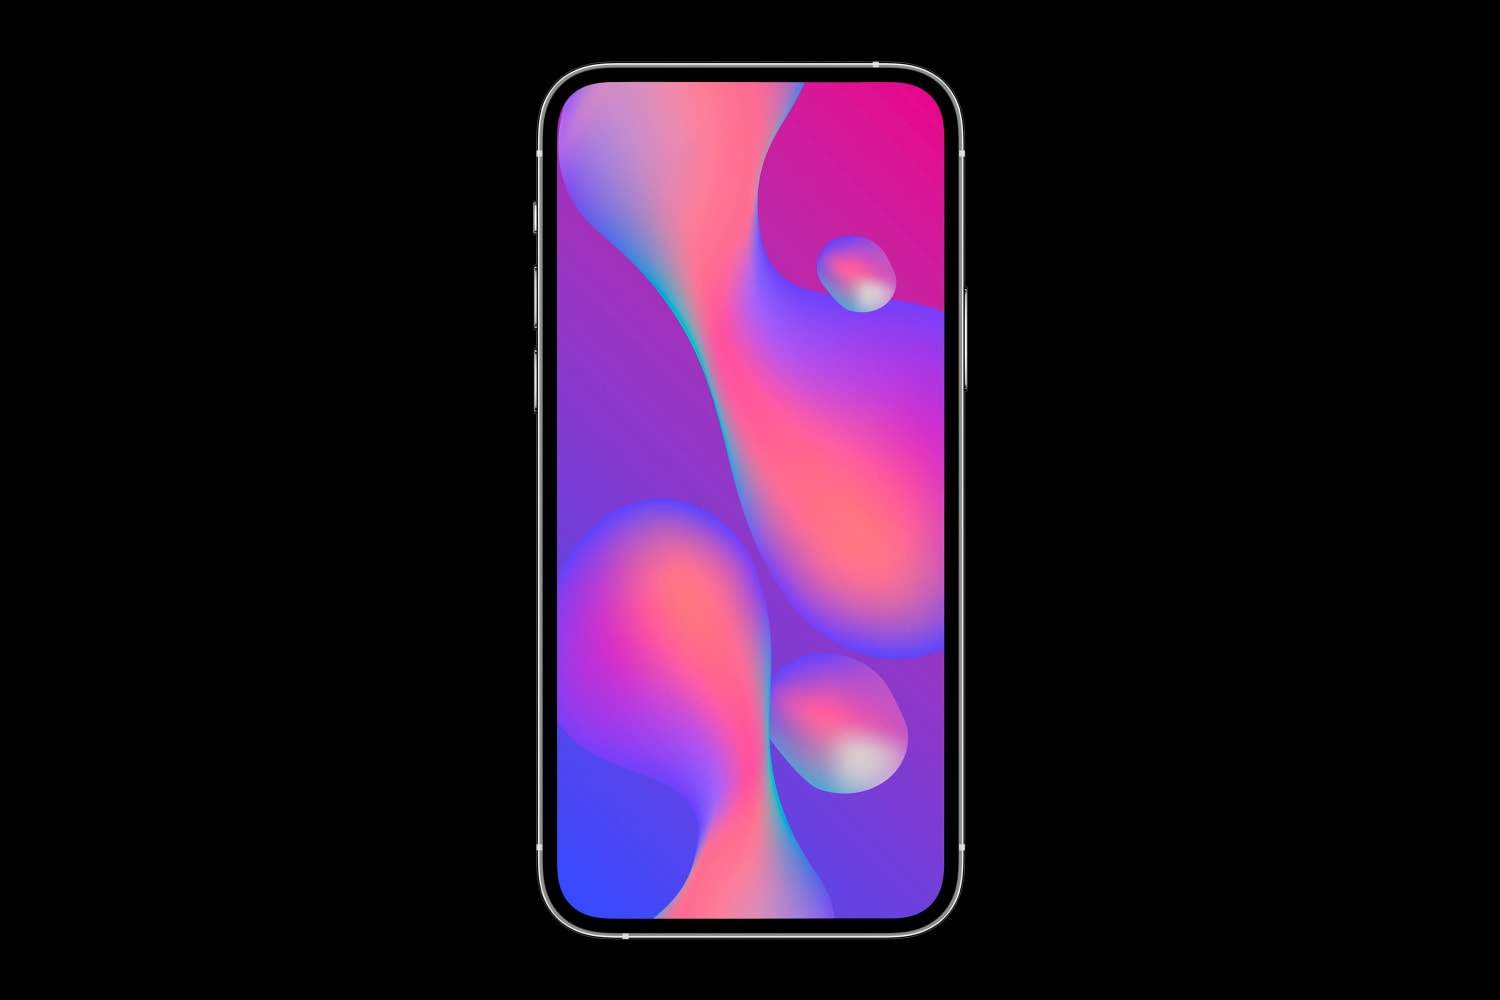 iphone-13-will-reportedly-keep-iphone-12-sizes-and-upgrade-the-ultra-wide-20201106-1